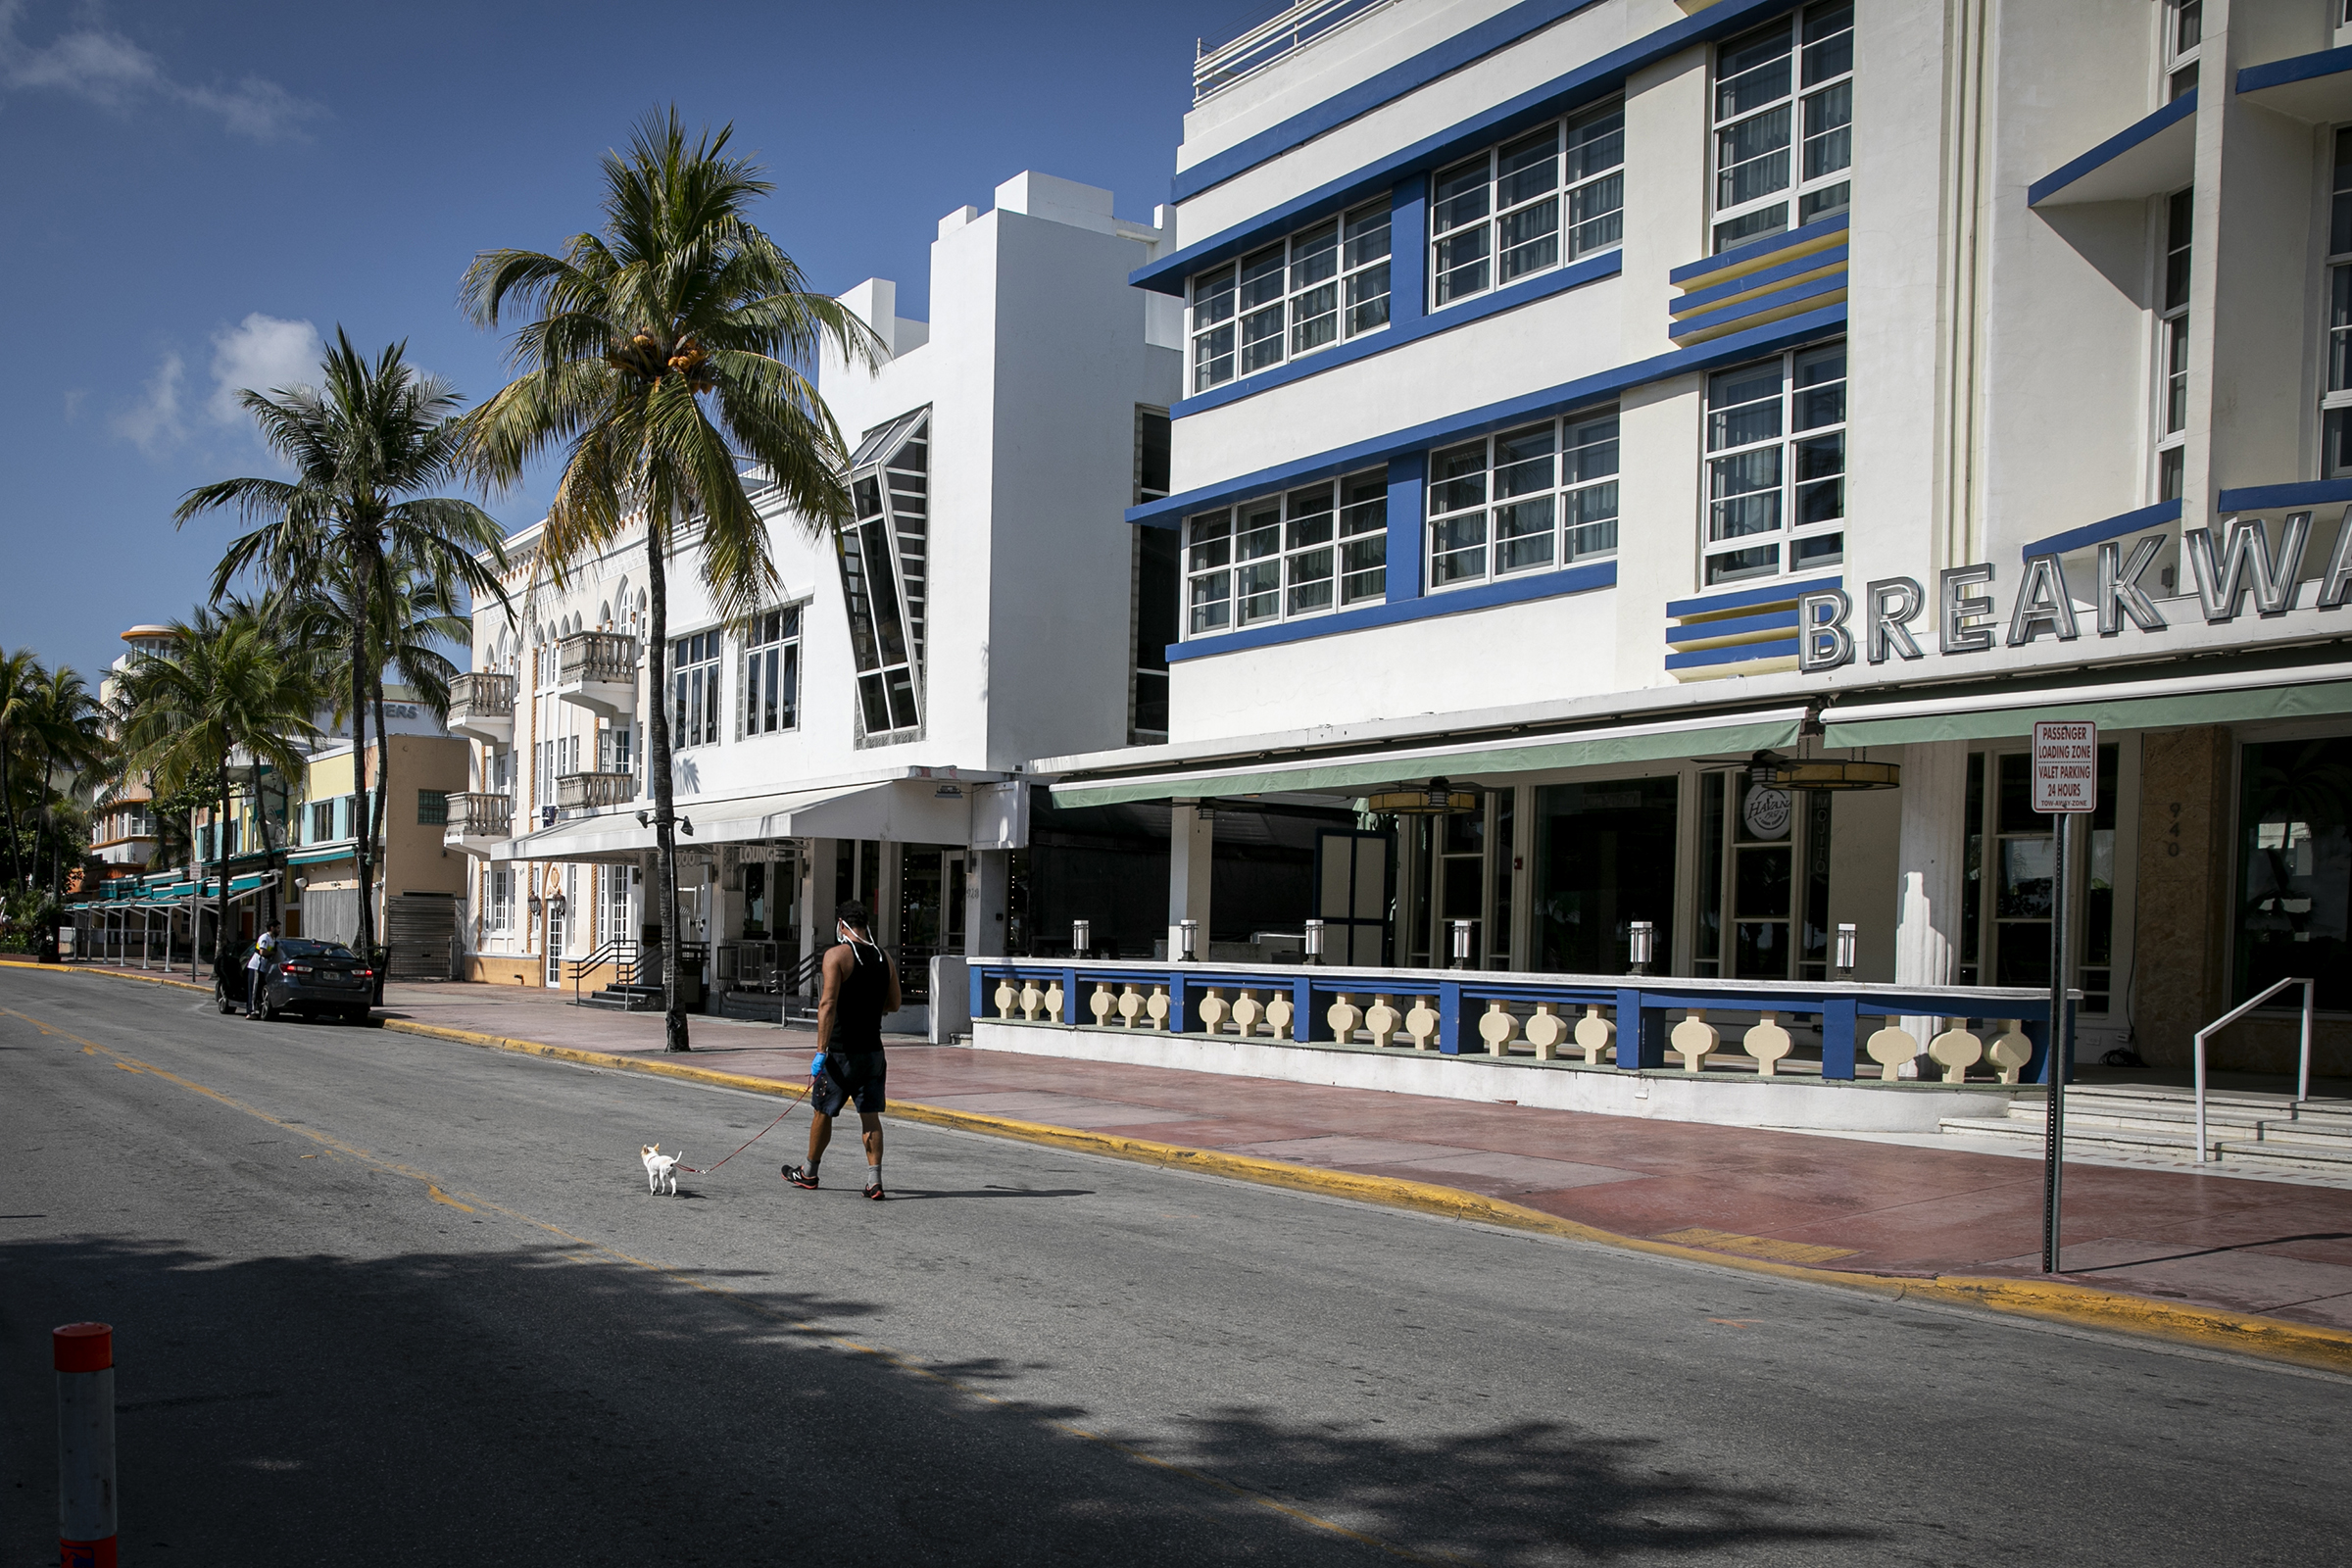 A pedestrian walks a dog in the middle of an empty street in Miami, Florida, on April 8, 2020.